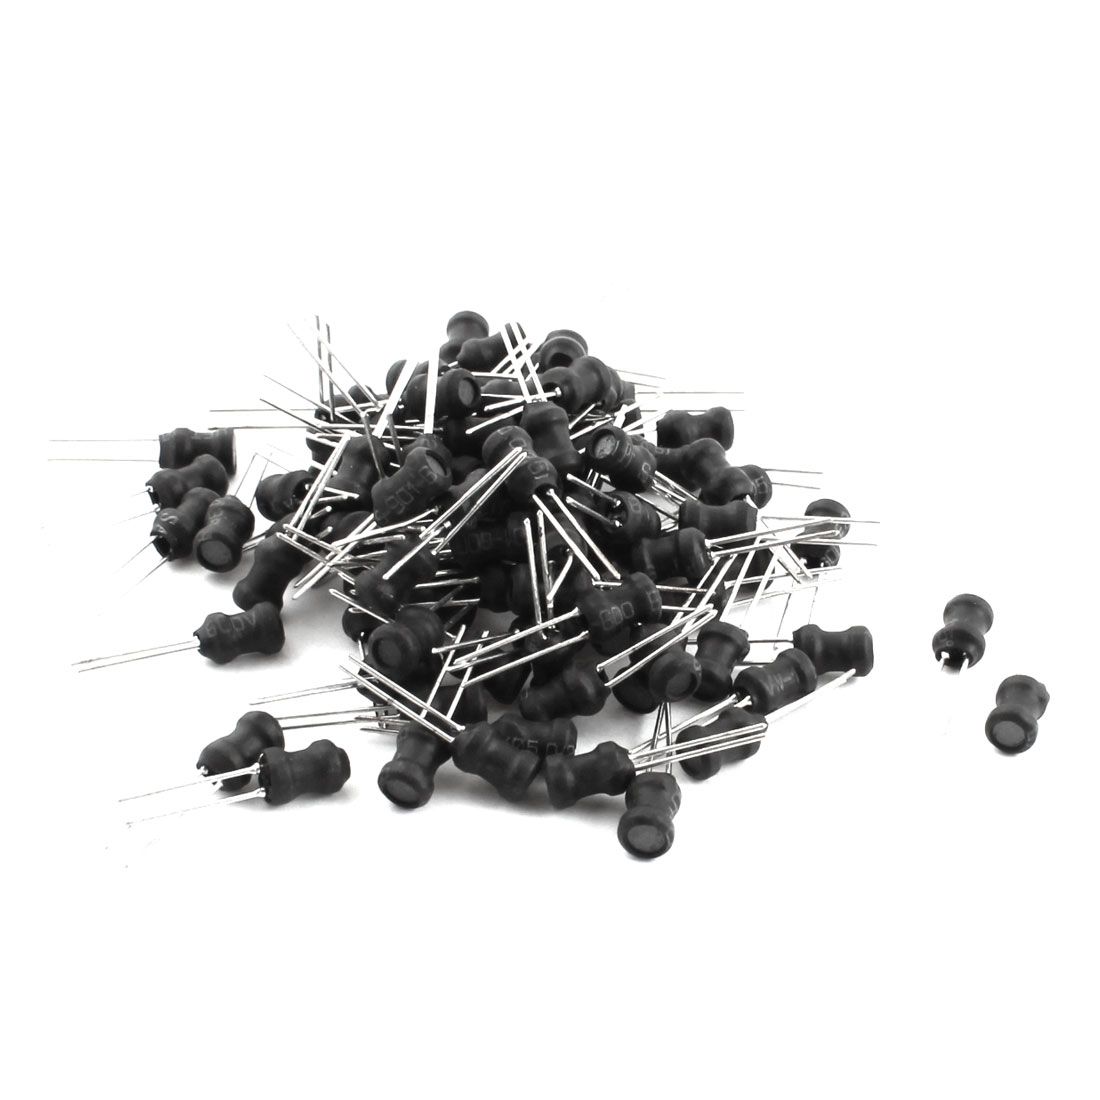 100Pcs 10UH 1A 10% Radial Leads Black UL-polyolefin Coated Magnetic Core Inductors 5x7mm